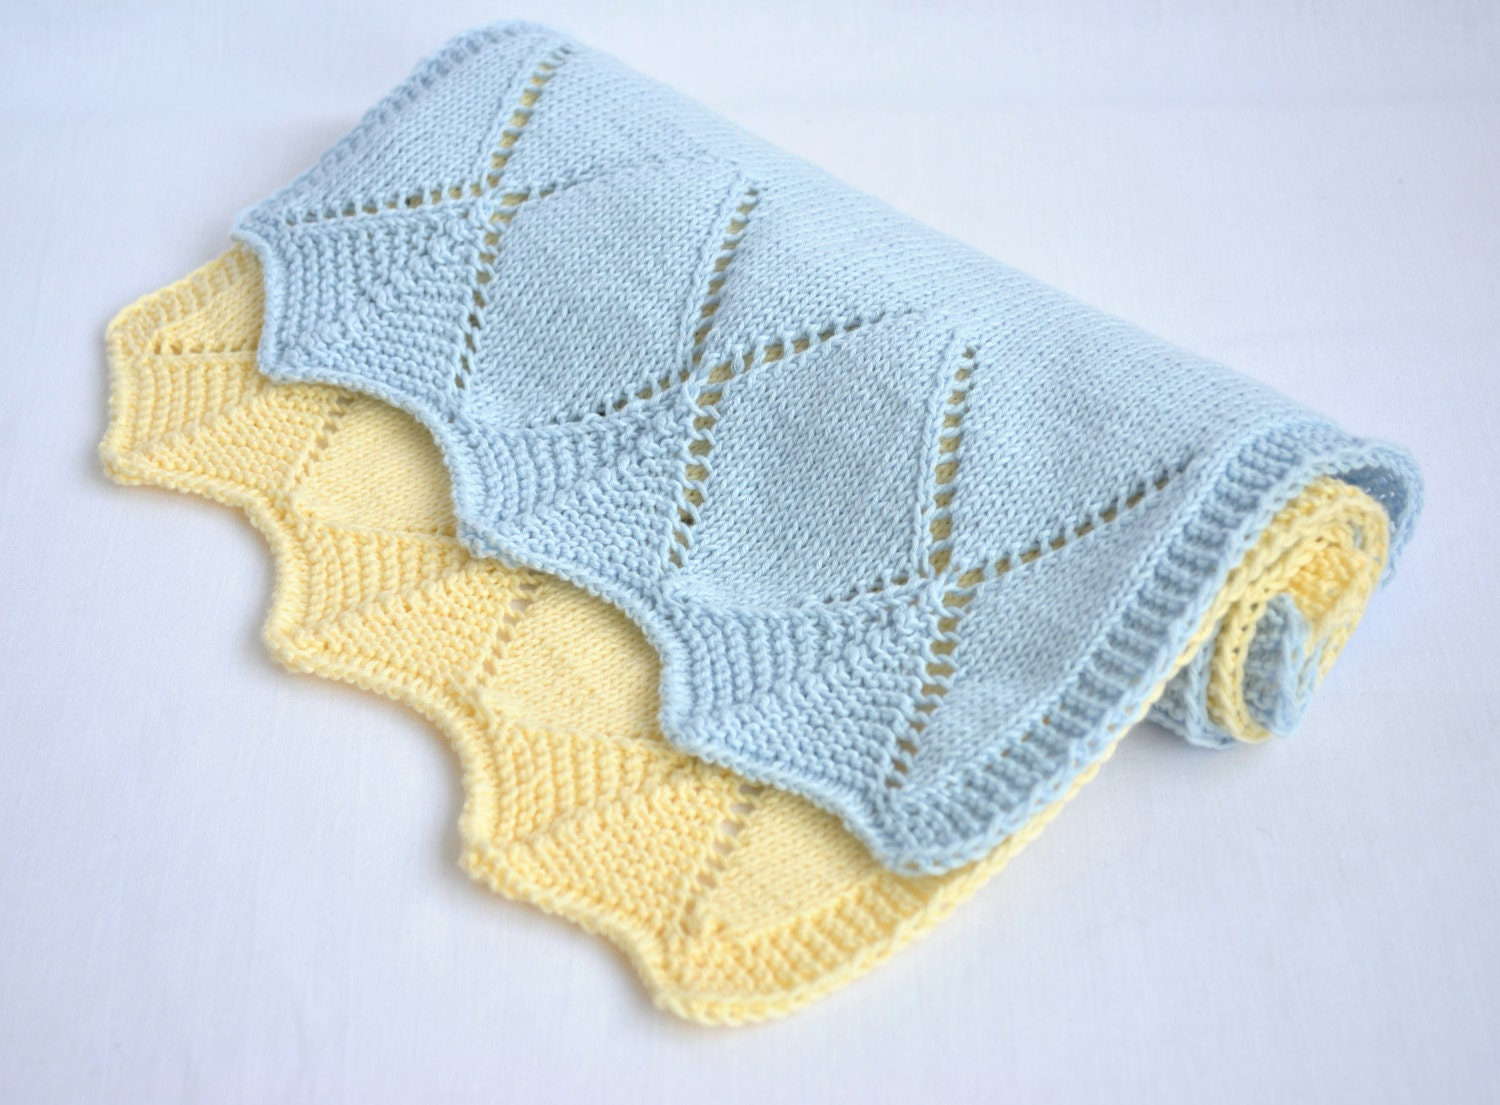 Knit Kitchen Towel Patterns : Kitchen Knit Towel. Bath Towel. Dischcloth. Knit Dish Towel